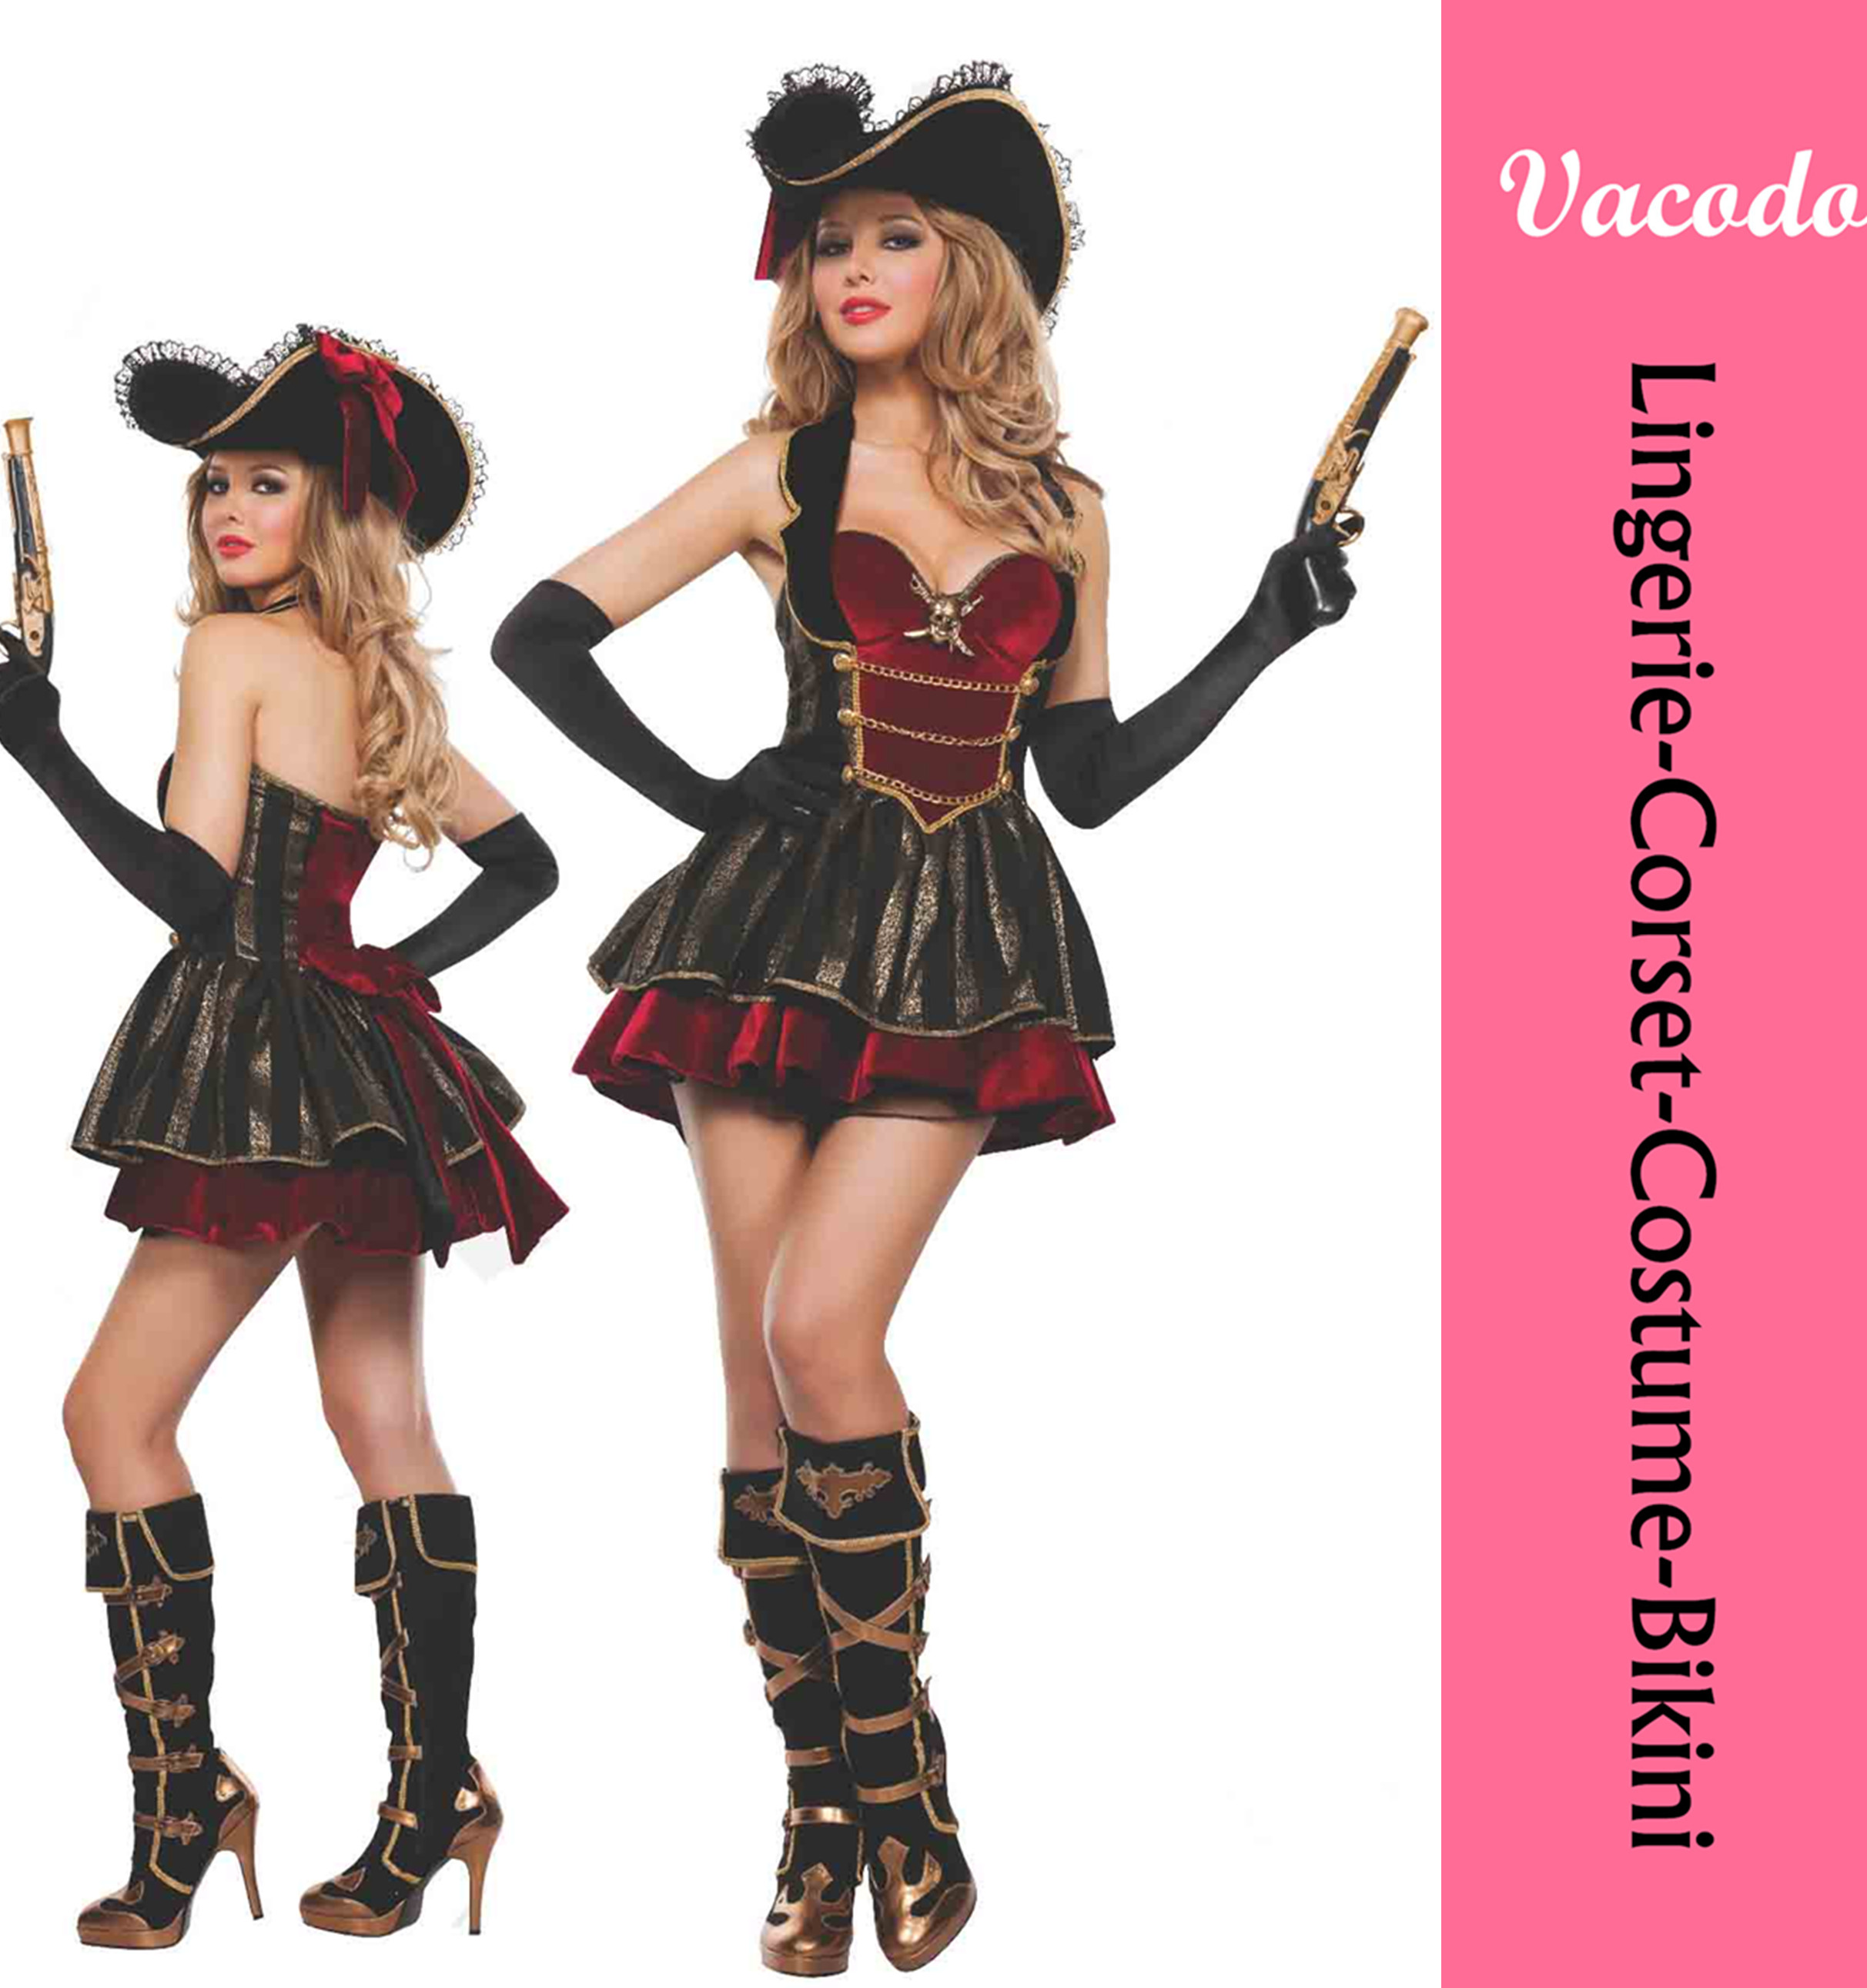 Vacodo plus size custom christmas costumes sexy party costumes for women